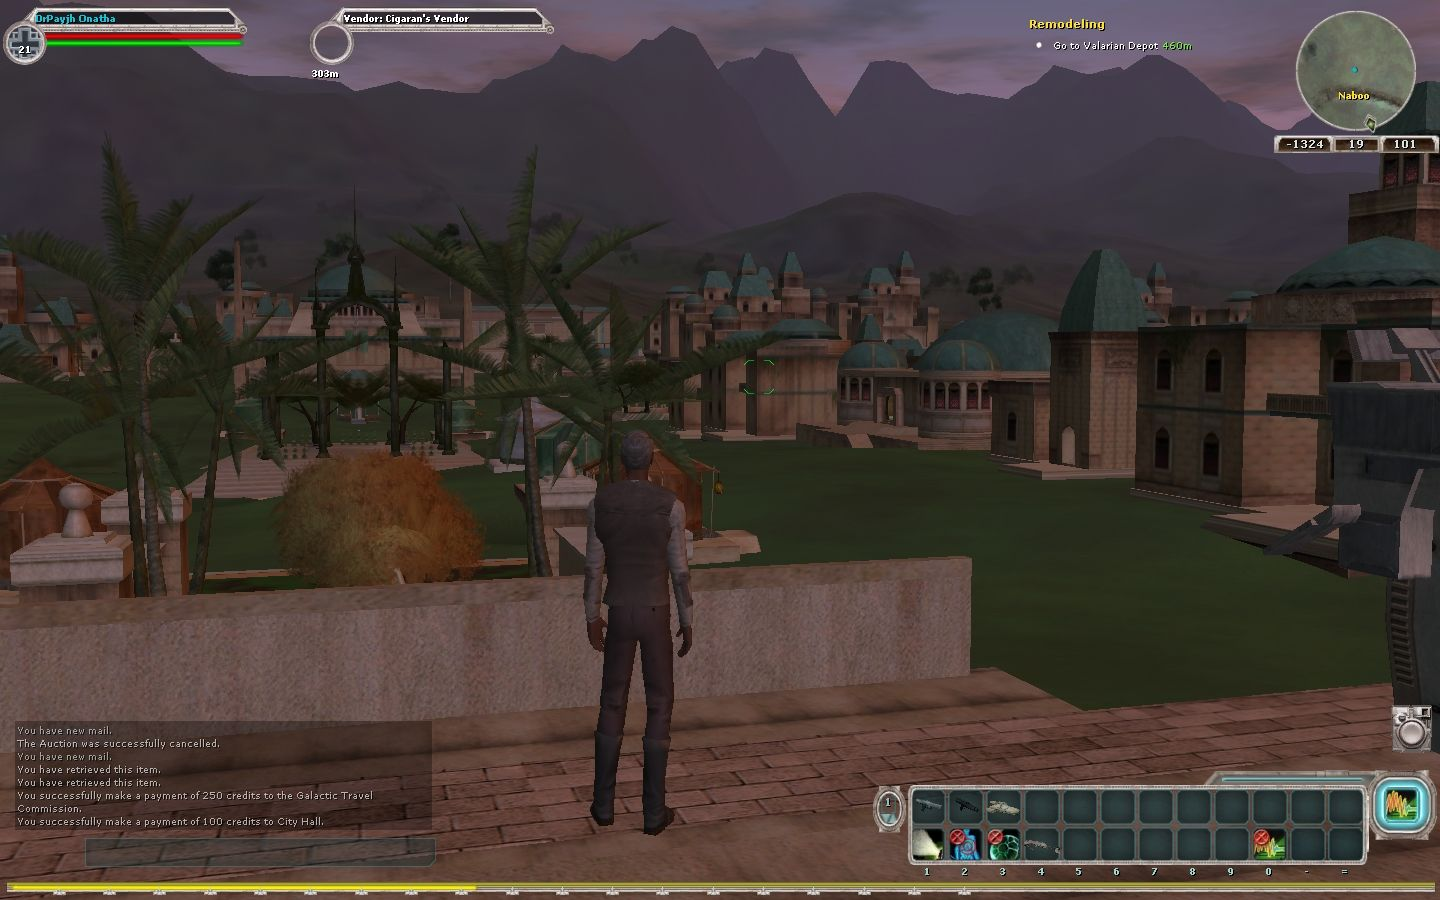 Star Wars: Galaxies - The Complete Online Adventures Windows Alacio Island, Naboo (Bria server) December, 2006